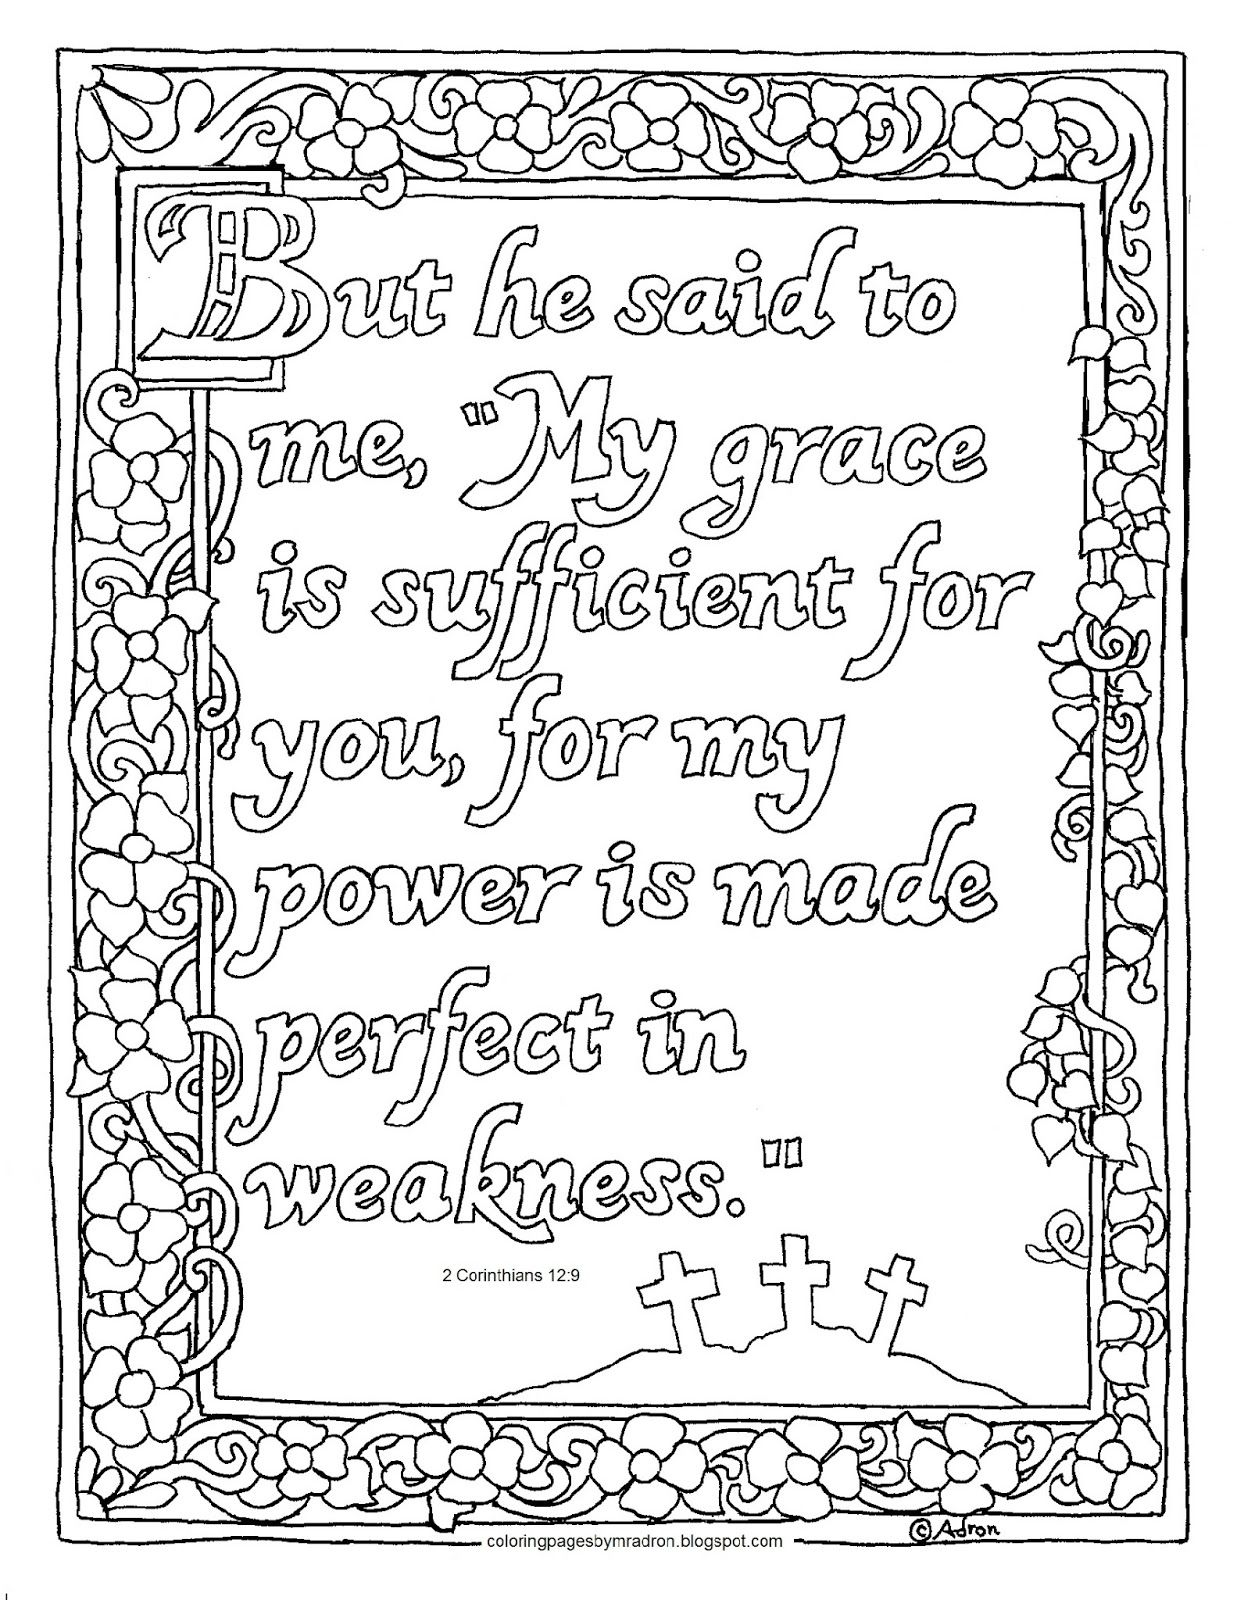 Printable Coloring Page Matthew 6 28 29 The Lilies Of The Field